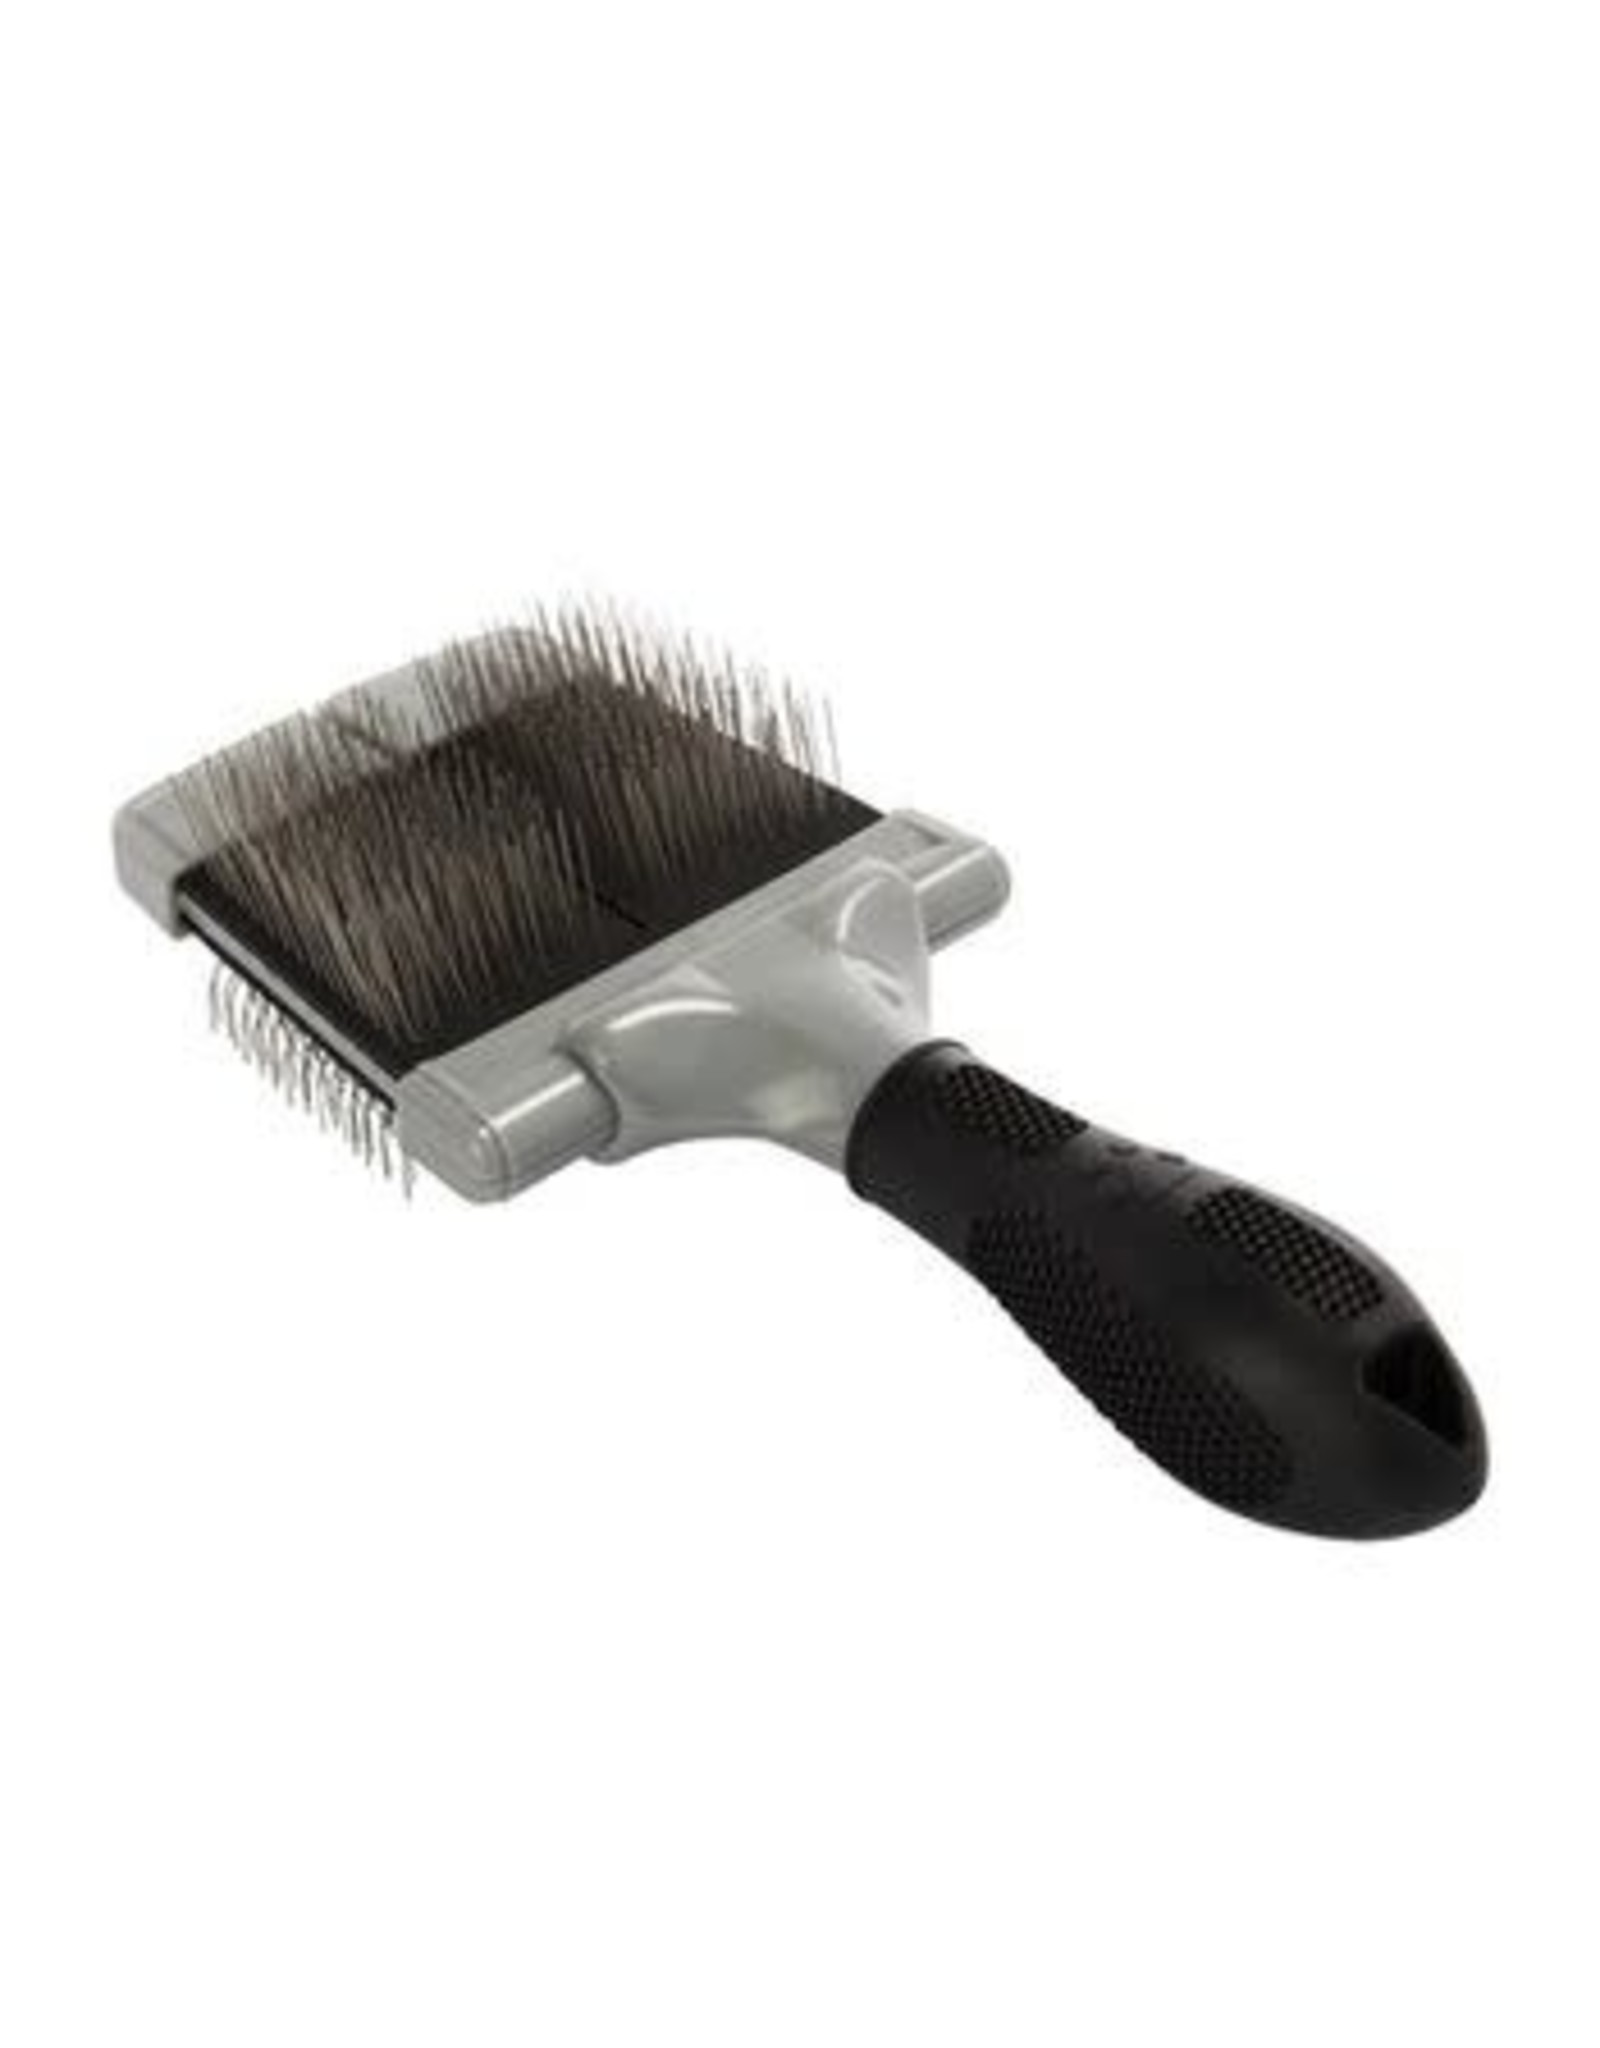 Furminator Furminator Slicker Brush Large Firm